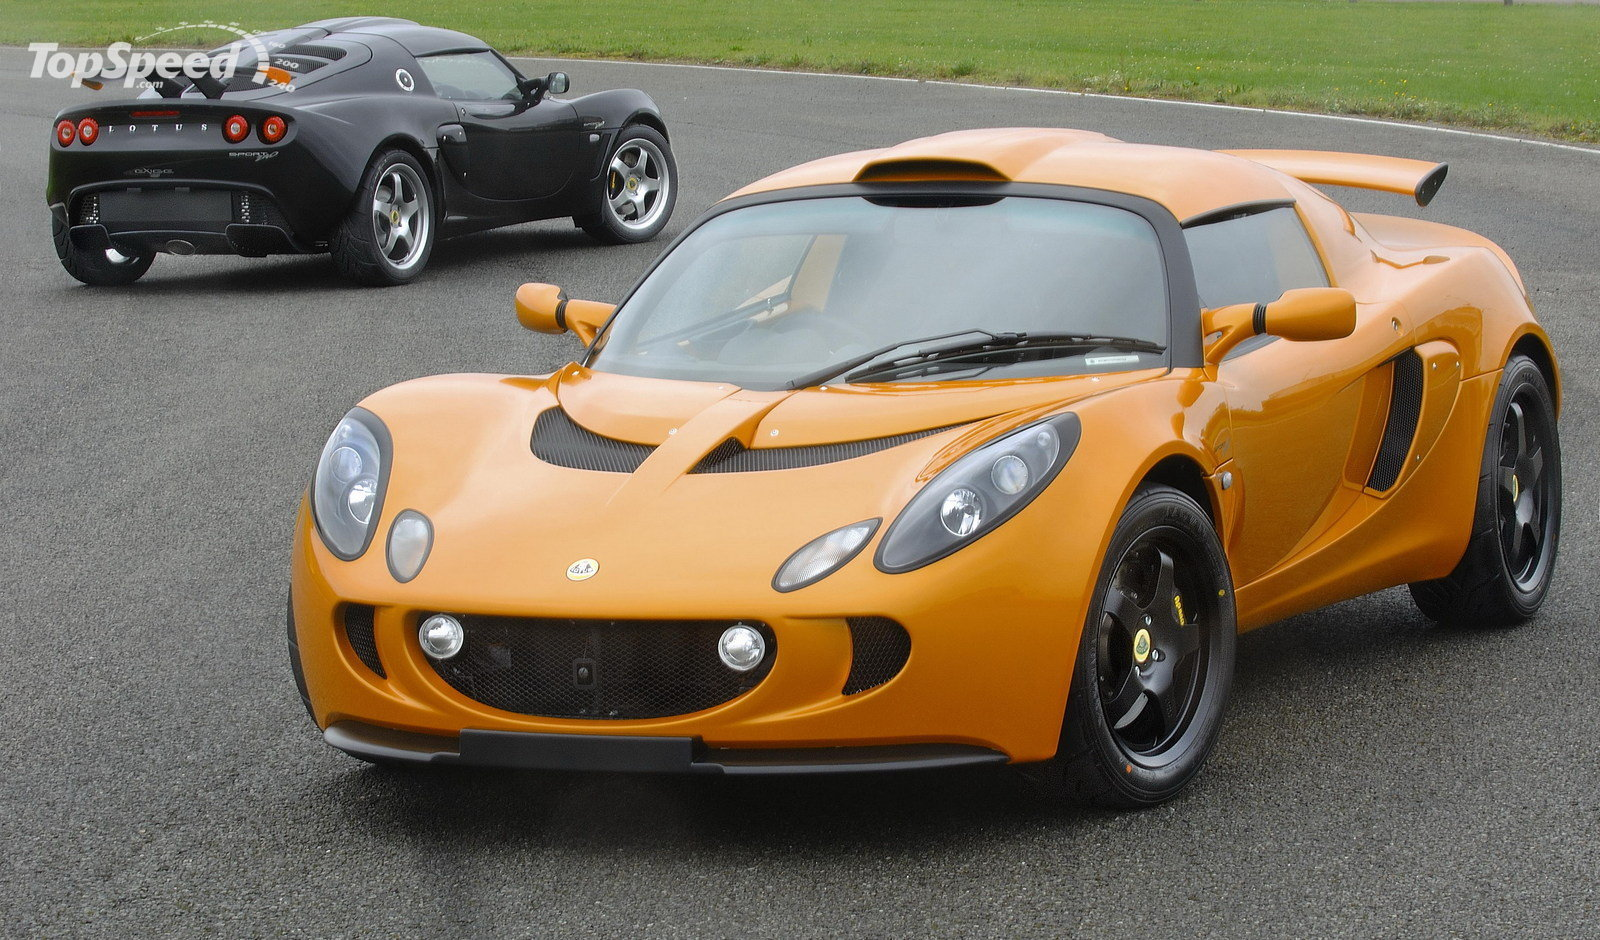 What Is The Fastest Production Car In The World >> 2008 Lotus Exige Sport 240 Review - Top Speed